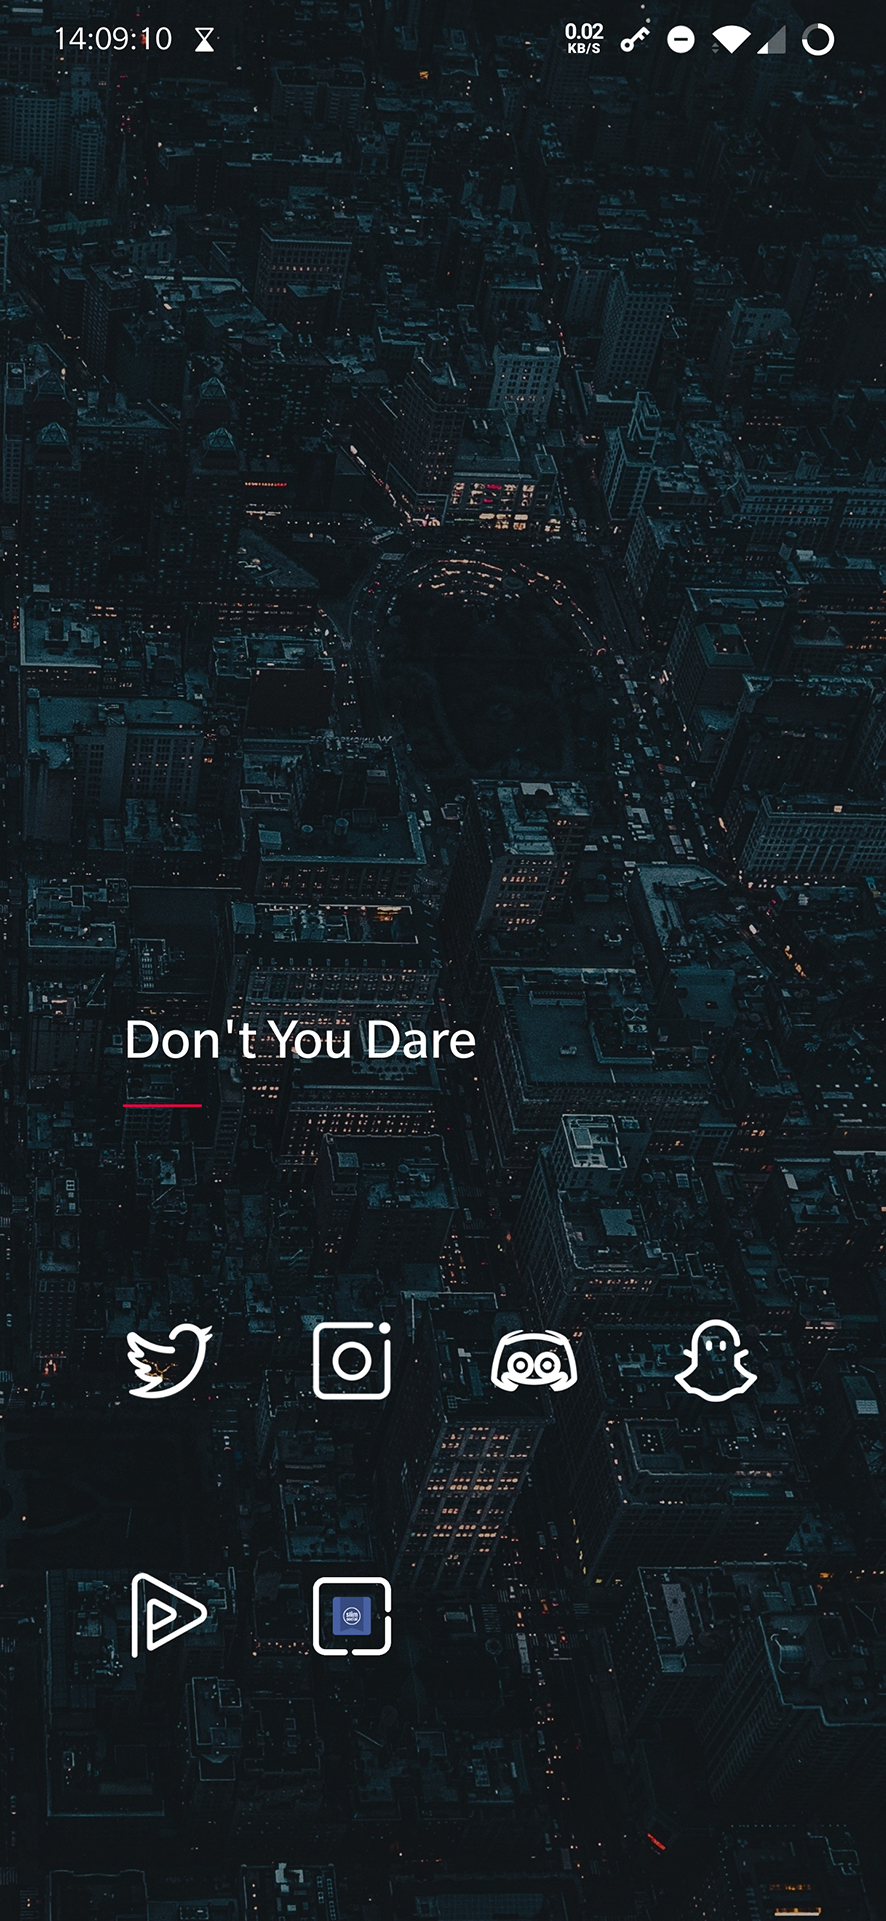 Folder named 'Don't you Dare' with Social Media apps